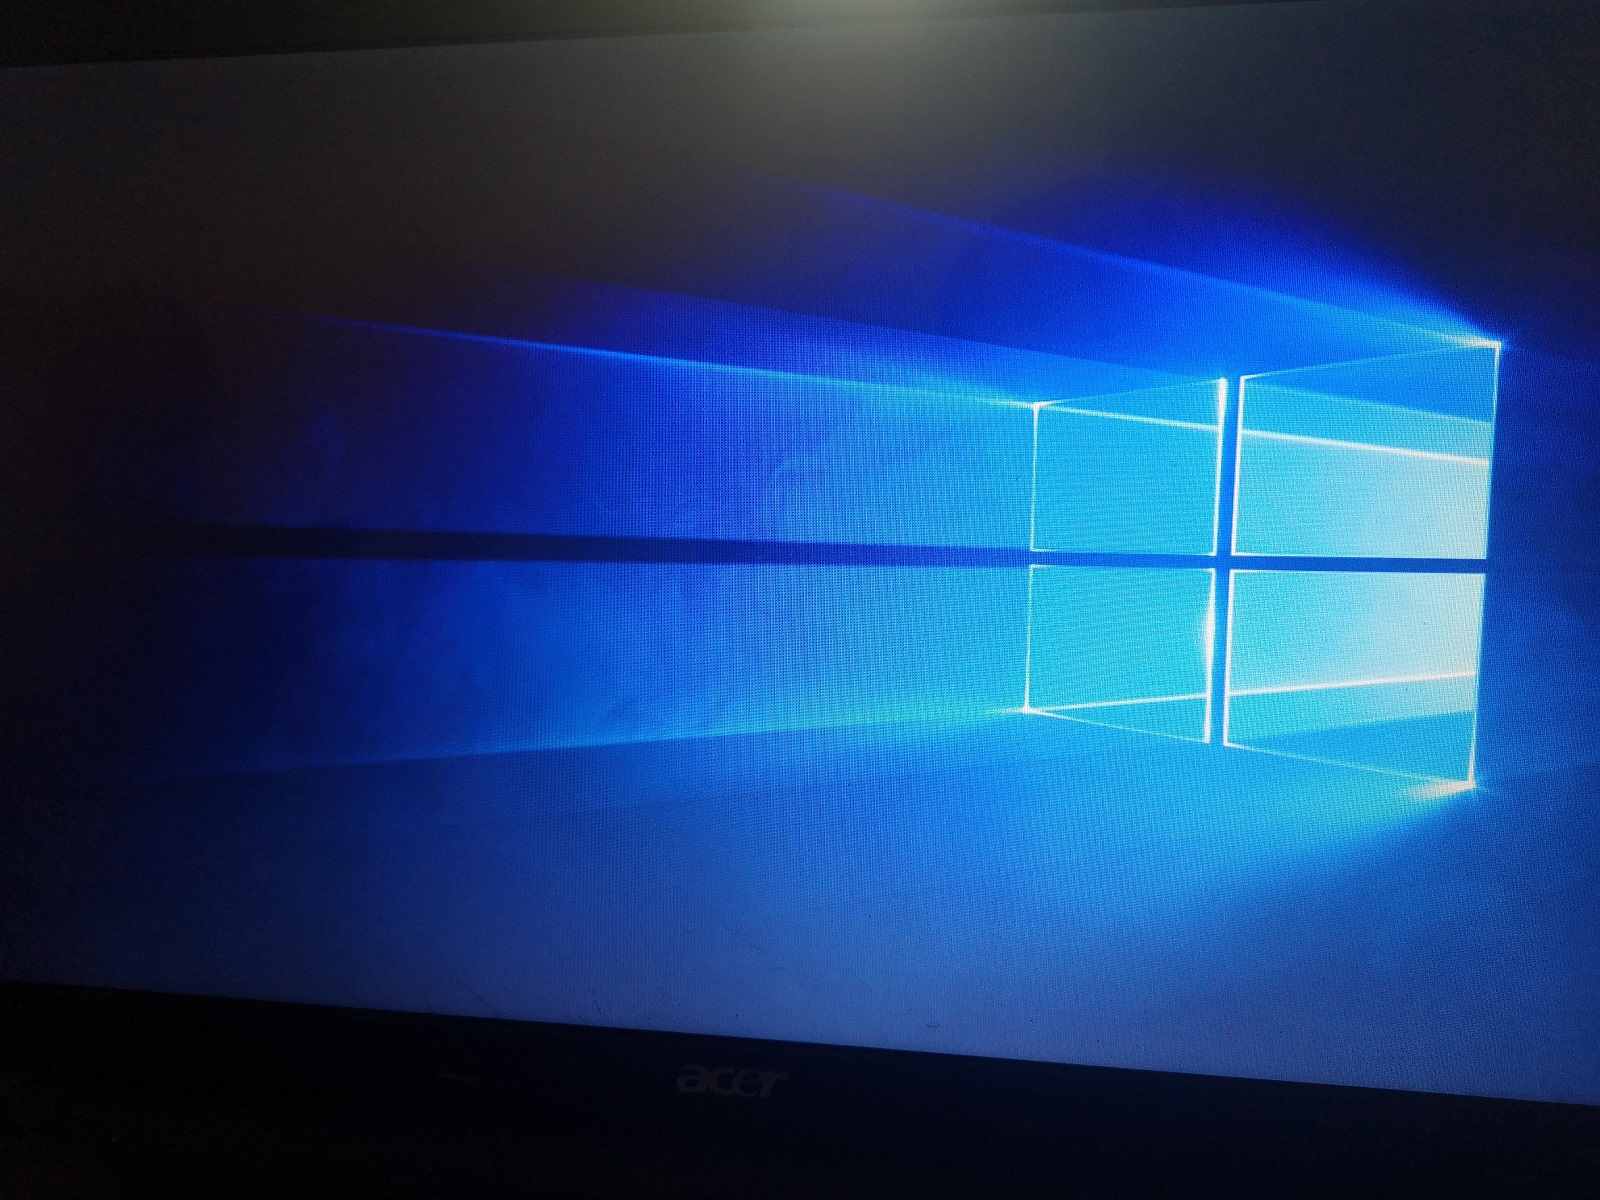 quitar programas del inicio de Windows